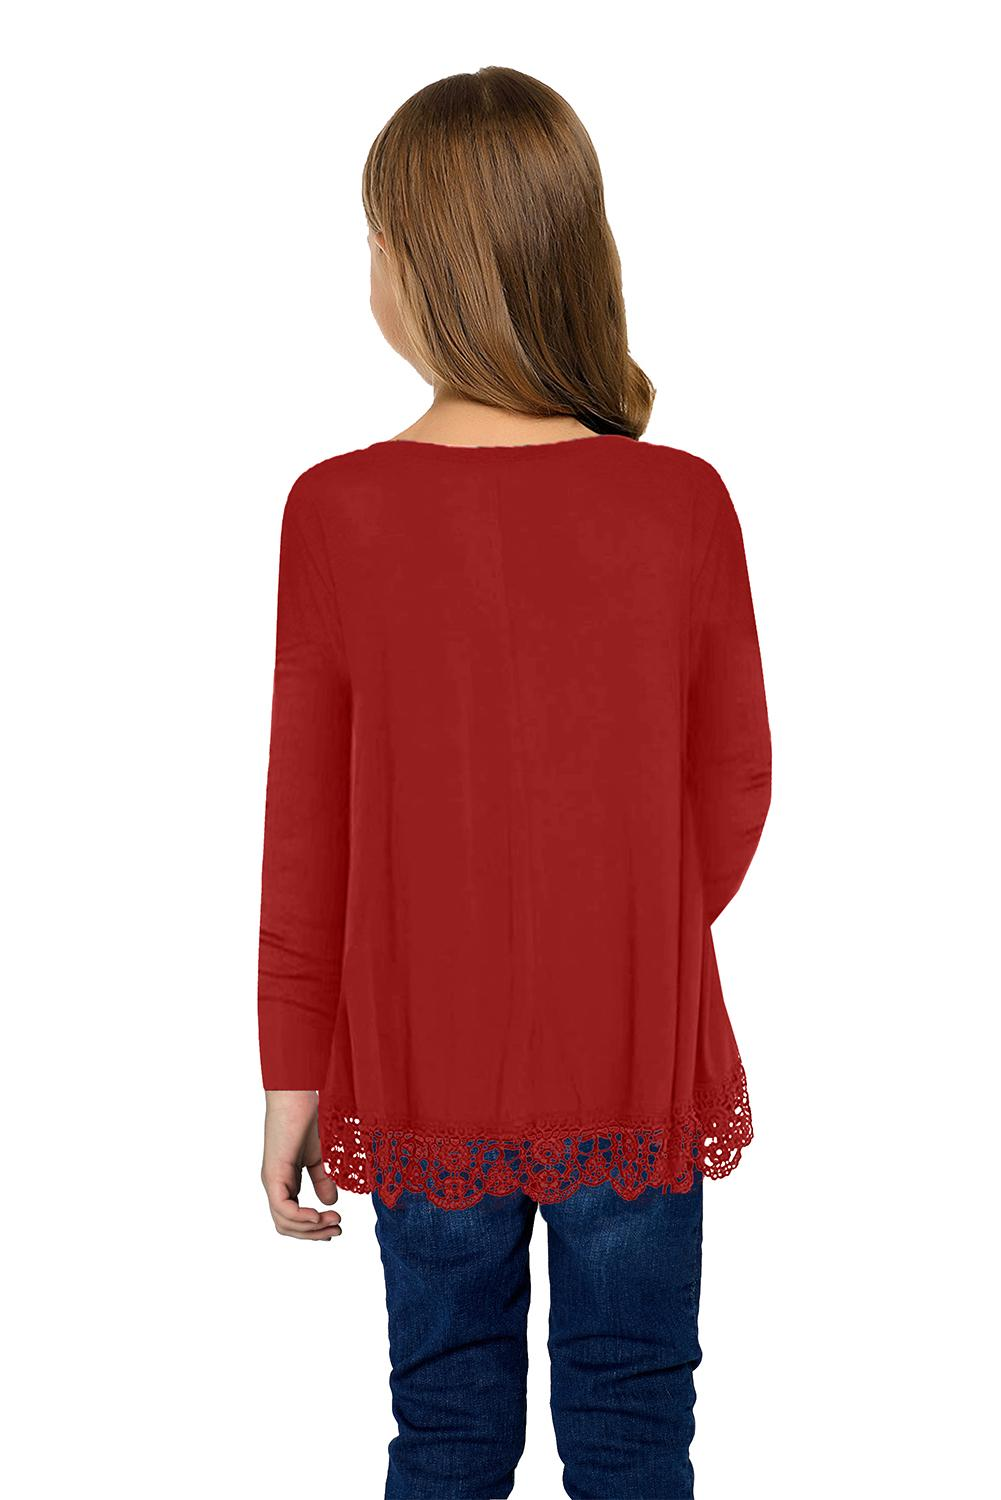 Red Long Sleeve Lace Trim O-neck A-line Tunic Blouse Girls Tops Discount Designer Fashion Clothes Shoes Bags Women Men Kids Children Black Owned Business